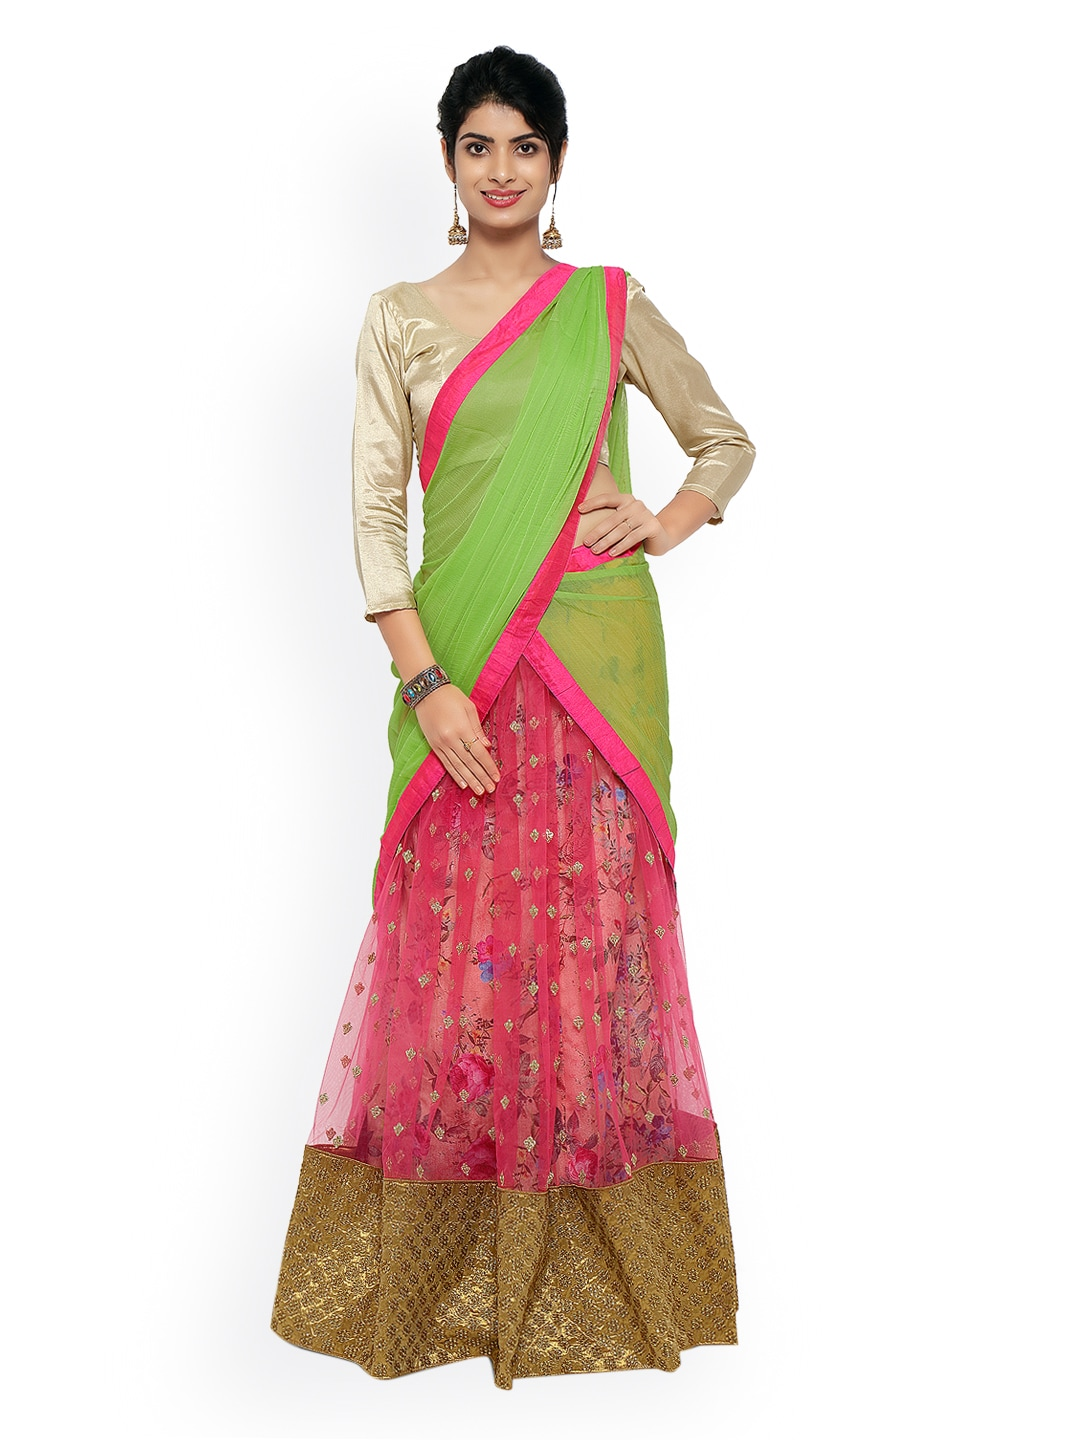 Touch Trends Pink & Green Net Semi-Stitched Lehenga Choli Material with Dupatta image